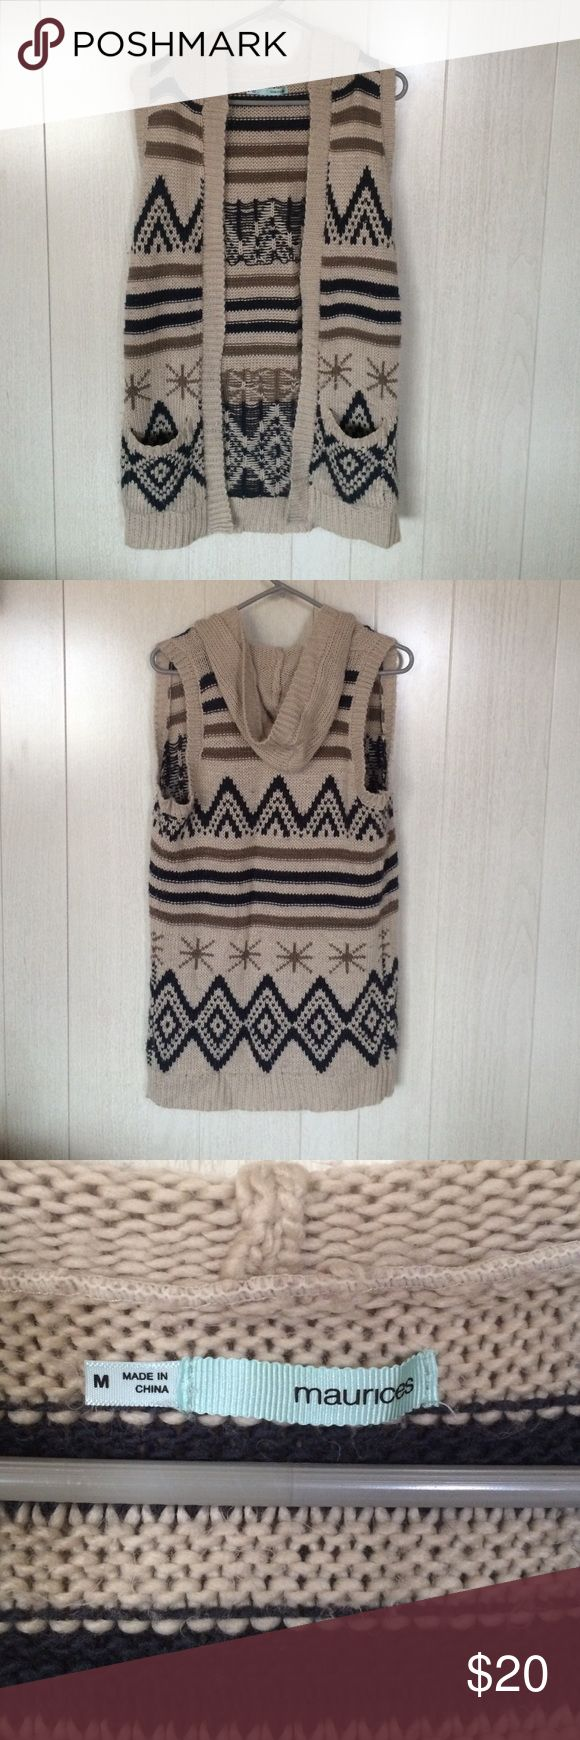 Beige cardigan with designs Beige colored cardigan with black and light brown designs. Mid thigh length. Cable knit. Hooded. Sleeveless. Two front pockets. Very warm! Maurices Sweaters Cardigans